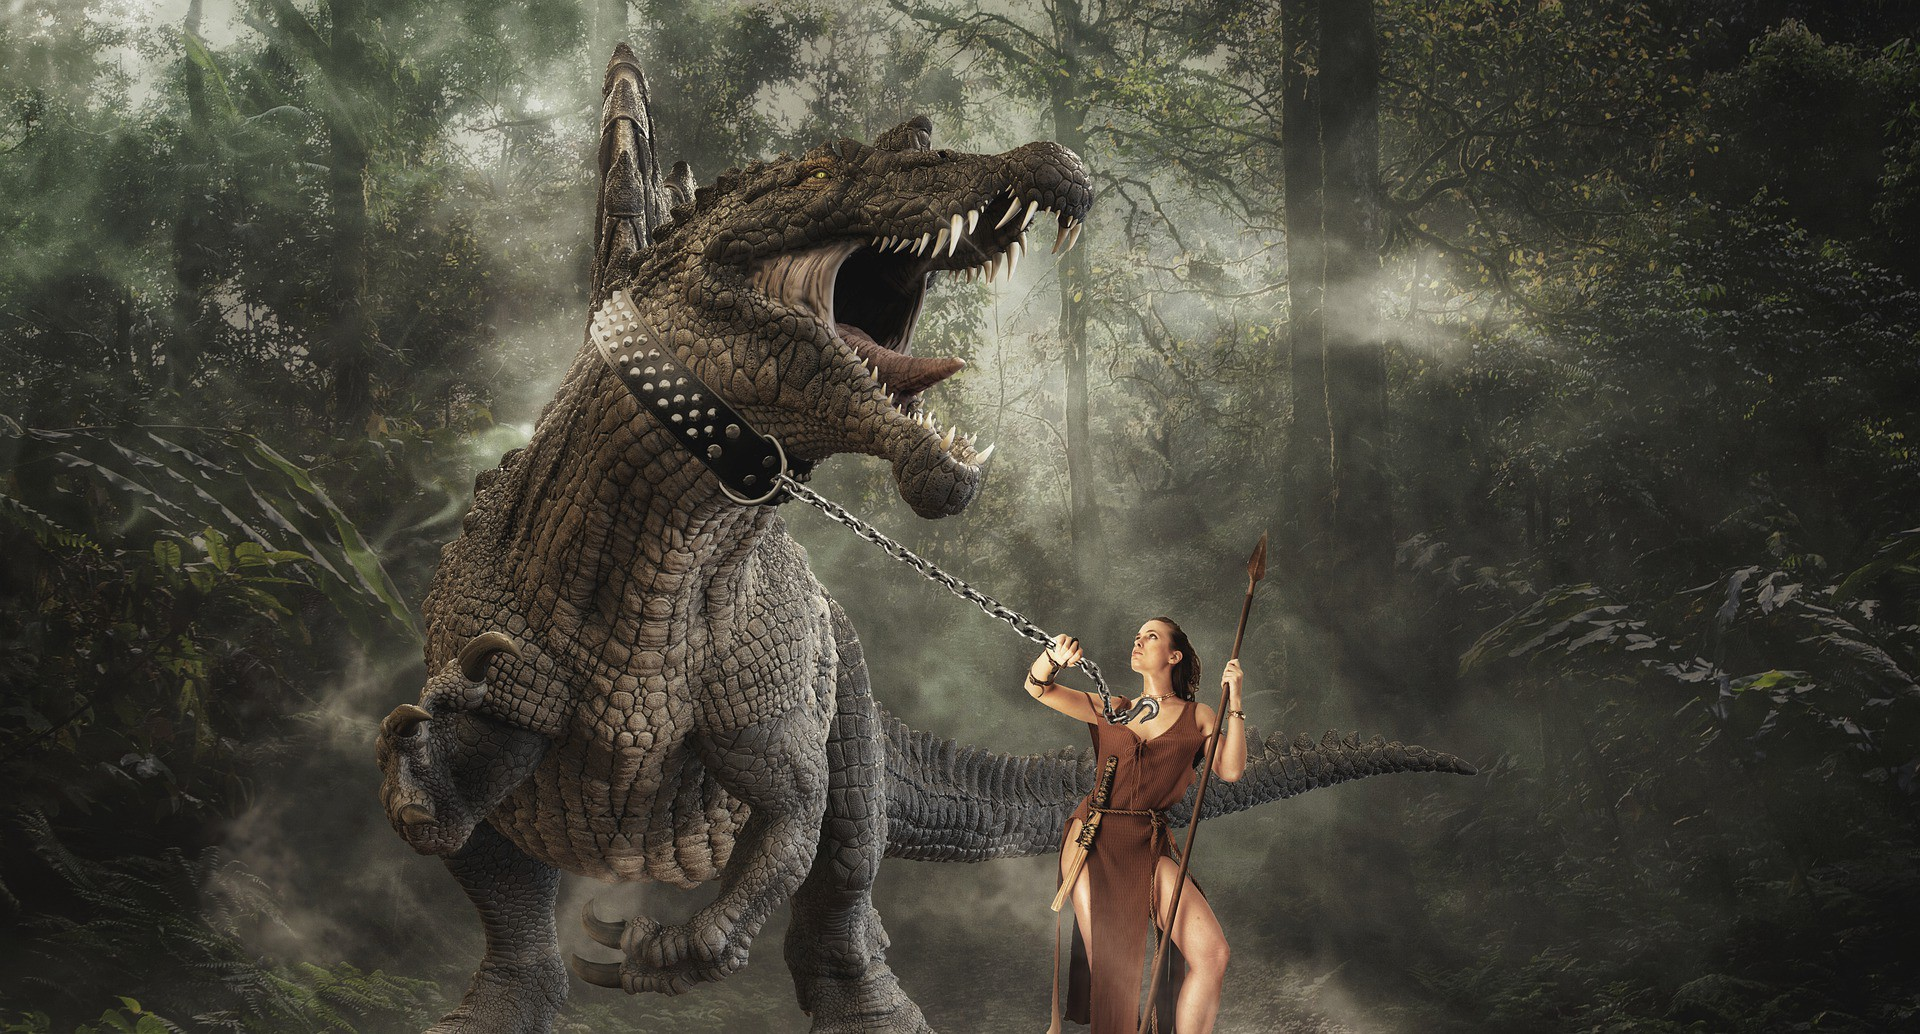 Beautiful young woman taming a Tyrannosaurus Rex with a chain around its neck